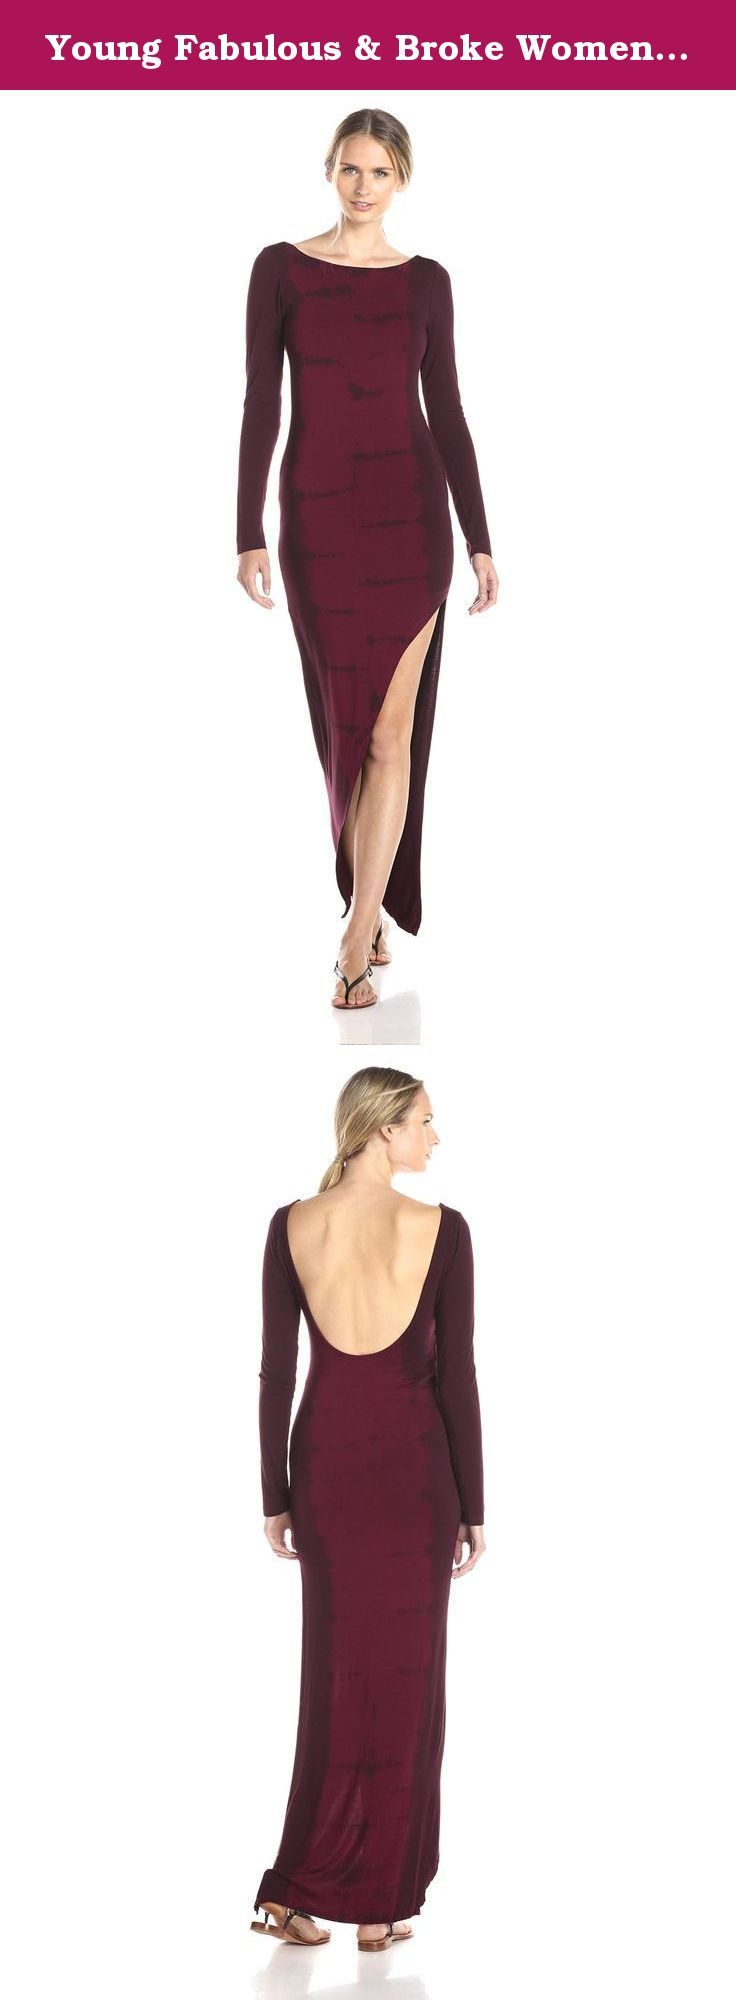 Young Fabulous & Broke Women's Krystal Tiger Wash Long Sleeve Maxi Dress, Cranberry, Small. Fitted maxi dress featuring asymmetric hem and dramatic slit skirt. Boat neck with deep scoop back. Long sleeves.